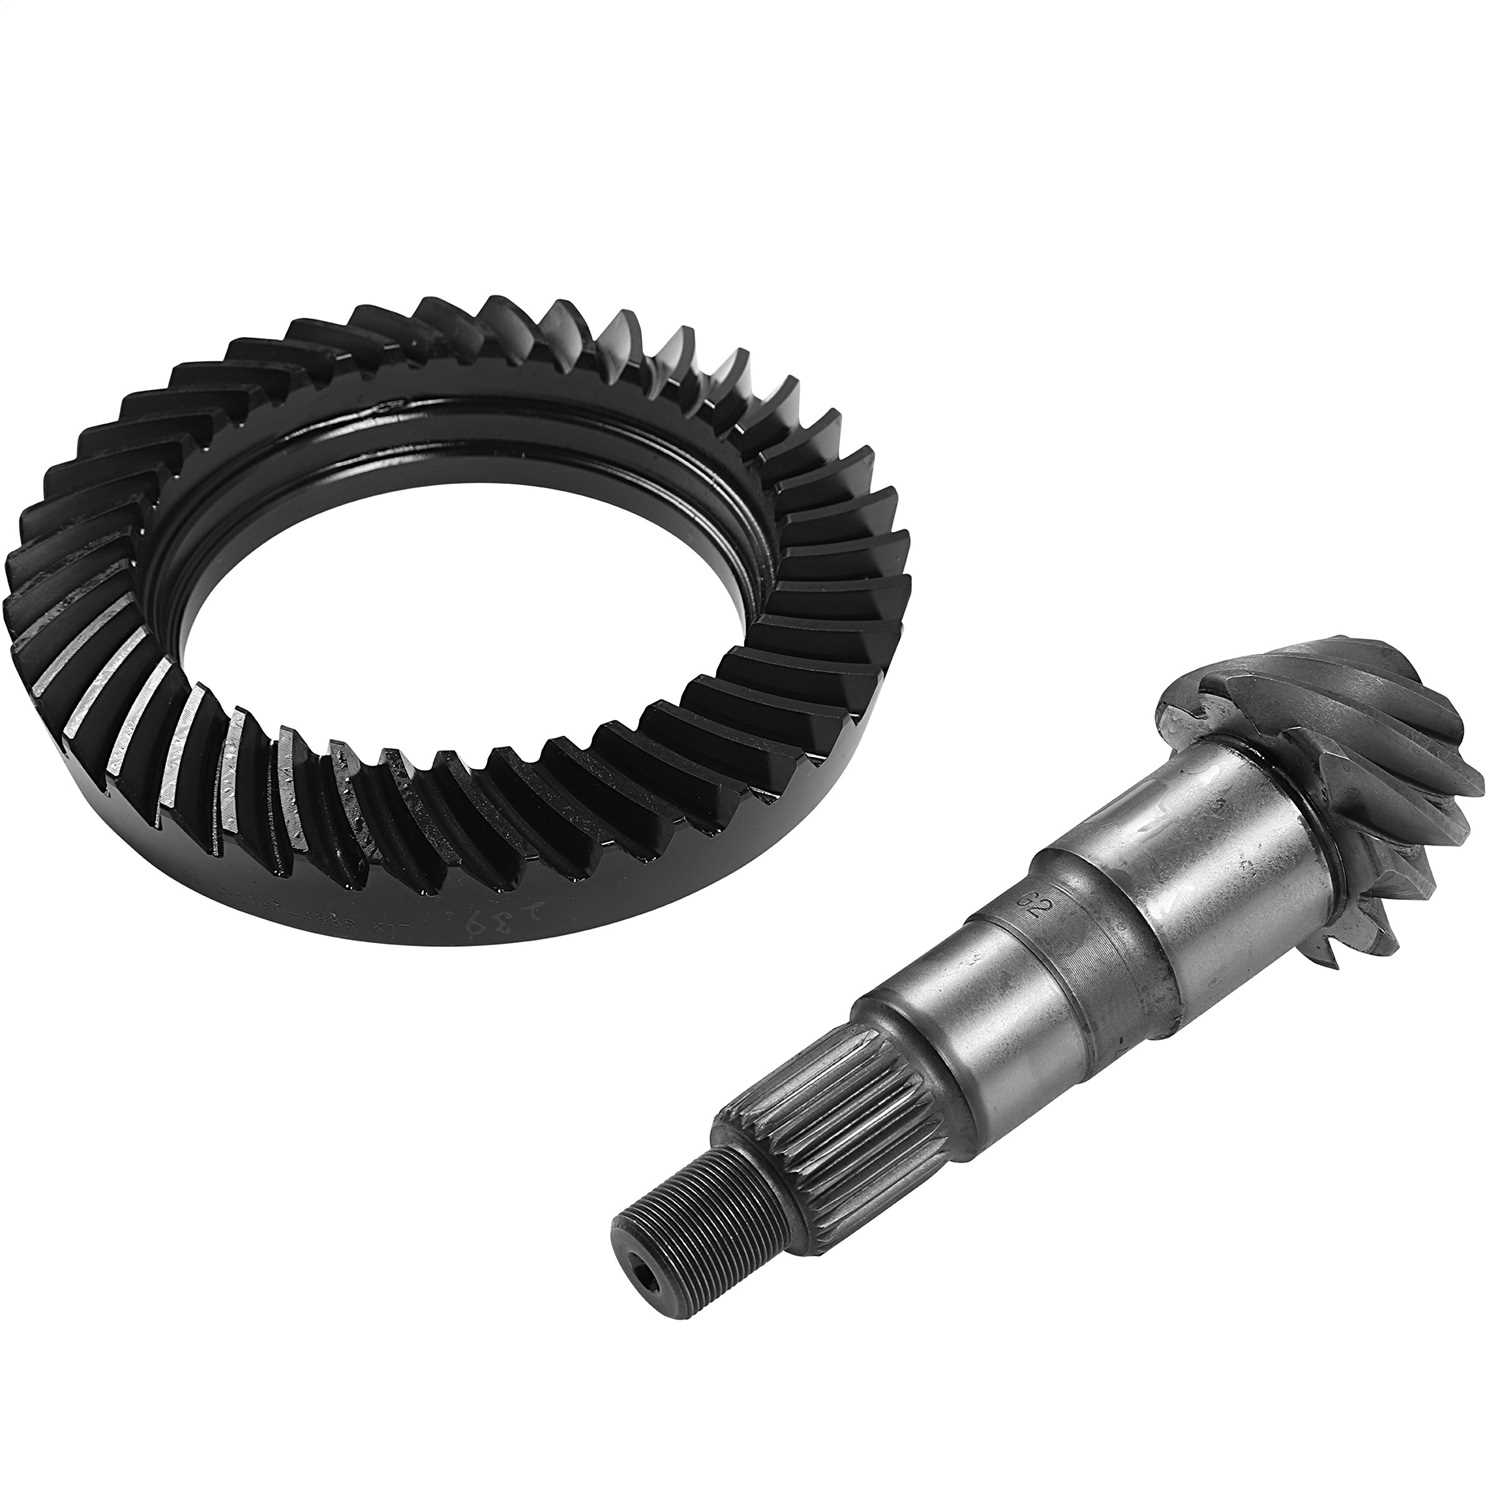 1-2152-410 G2 Axle and Gear Ring and Pinion Set